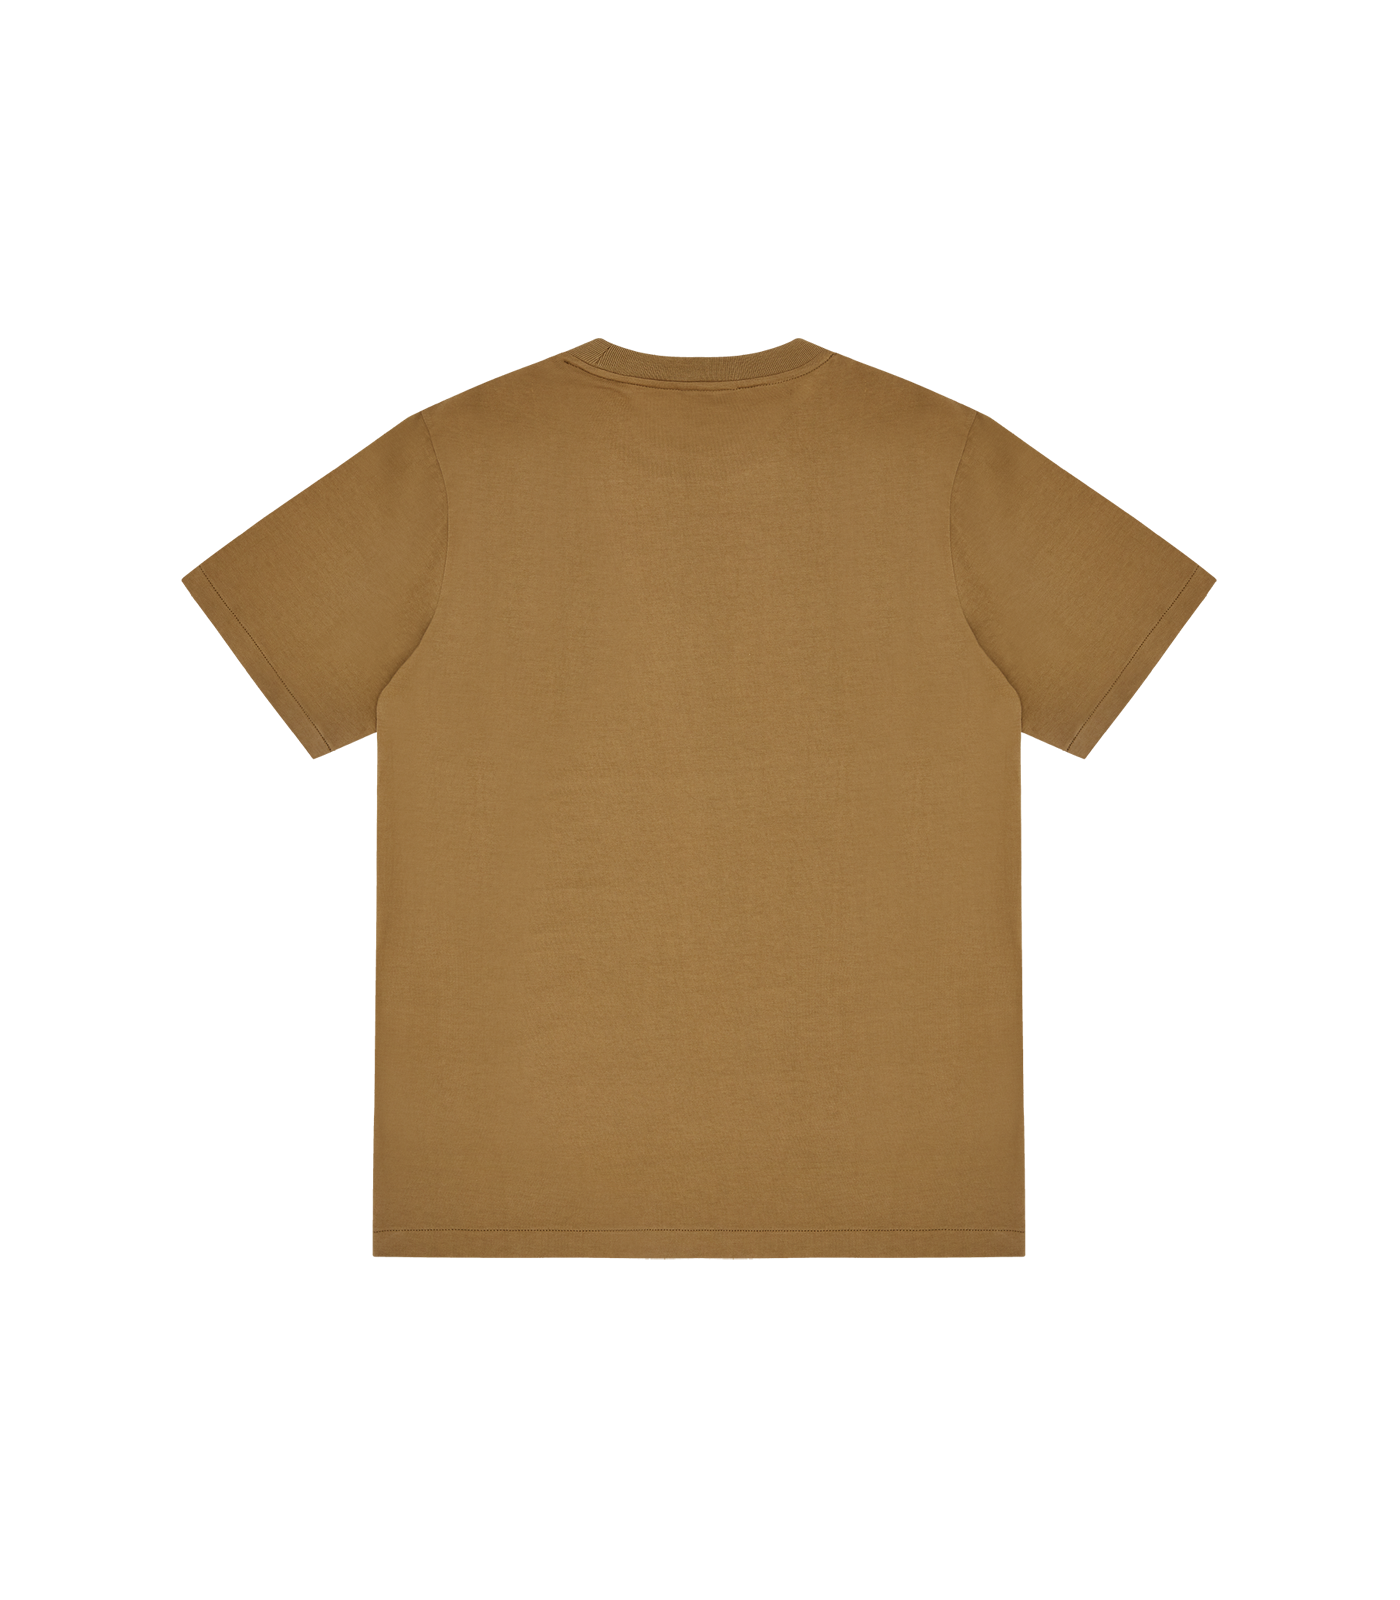 GEOMETRIC ARCH LOGO T-SHIRT - BROWN